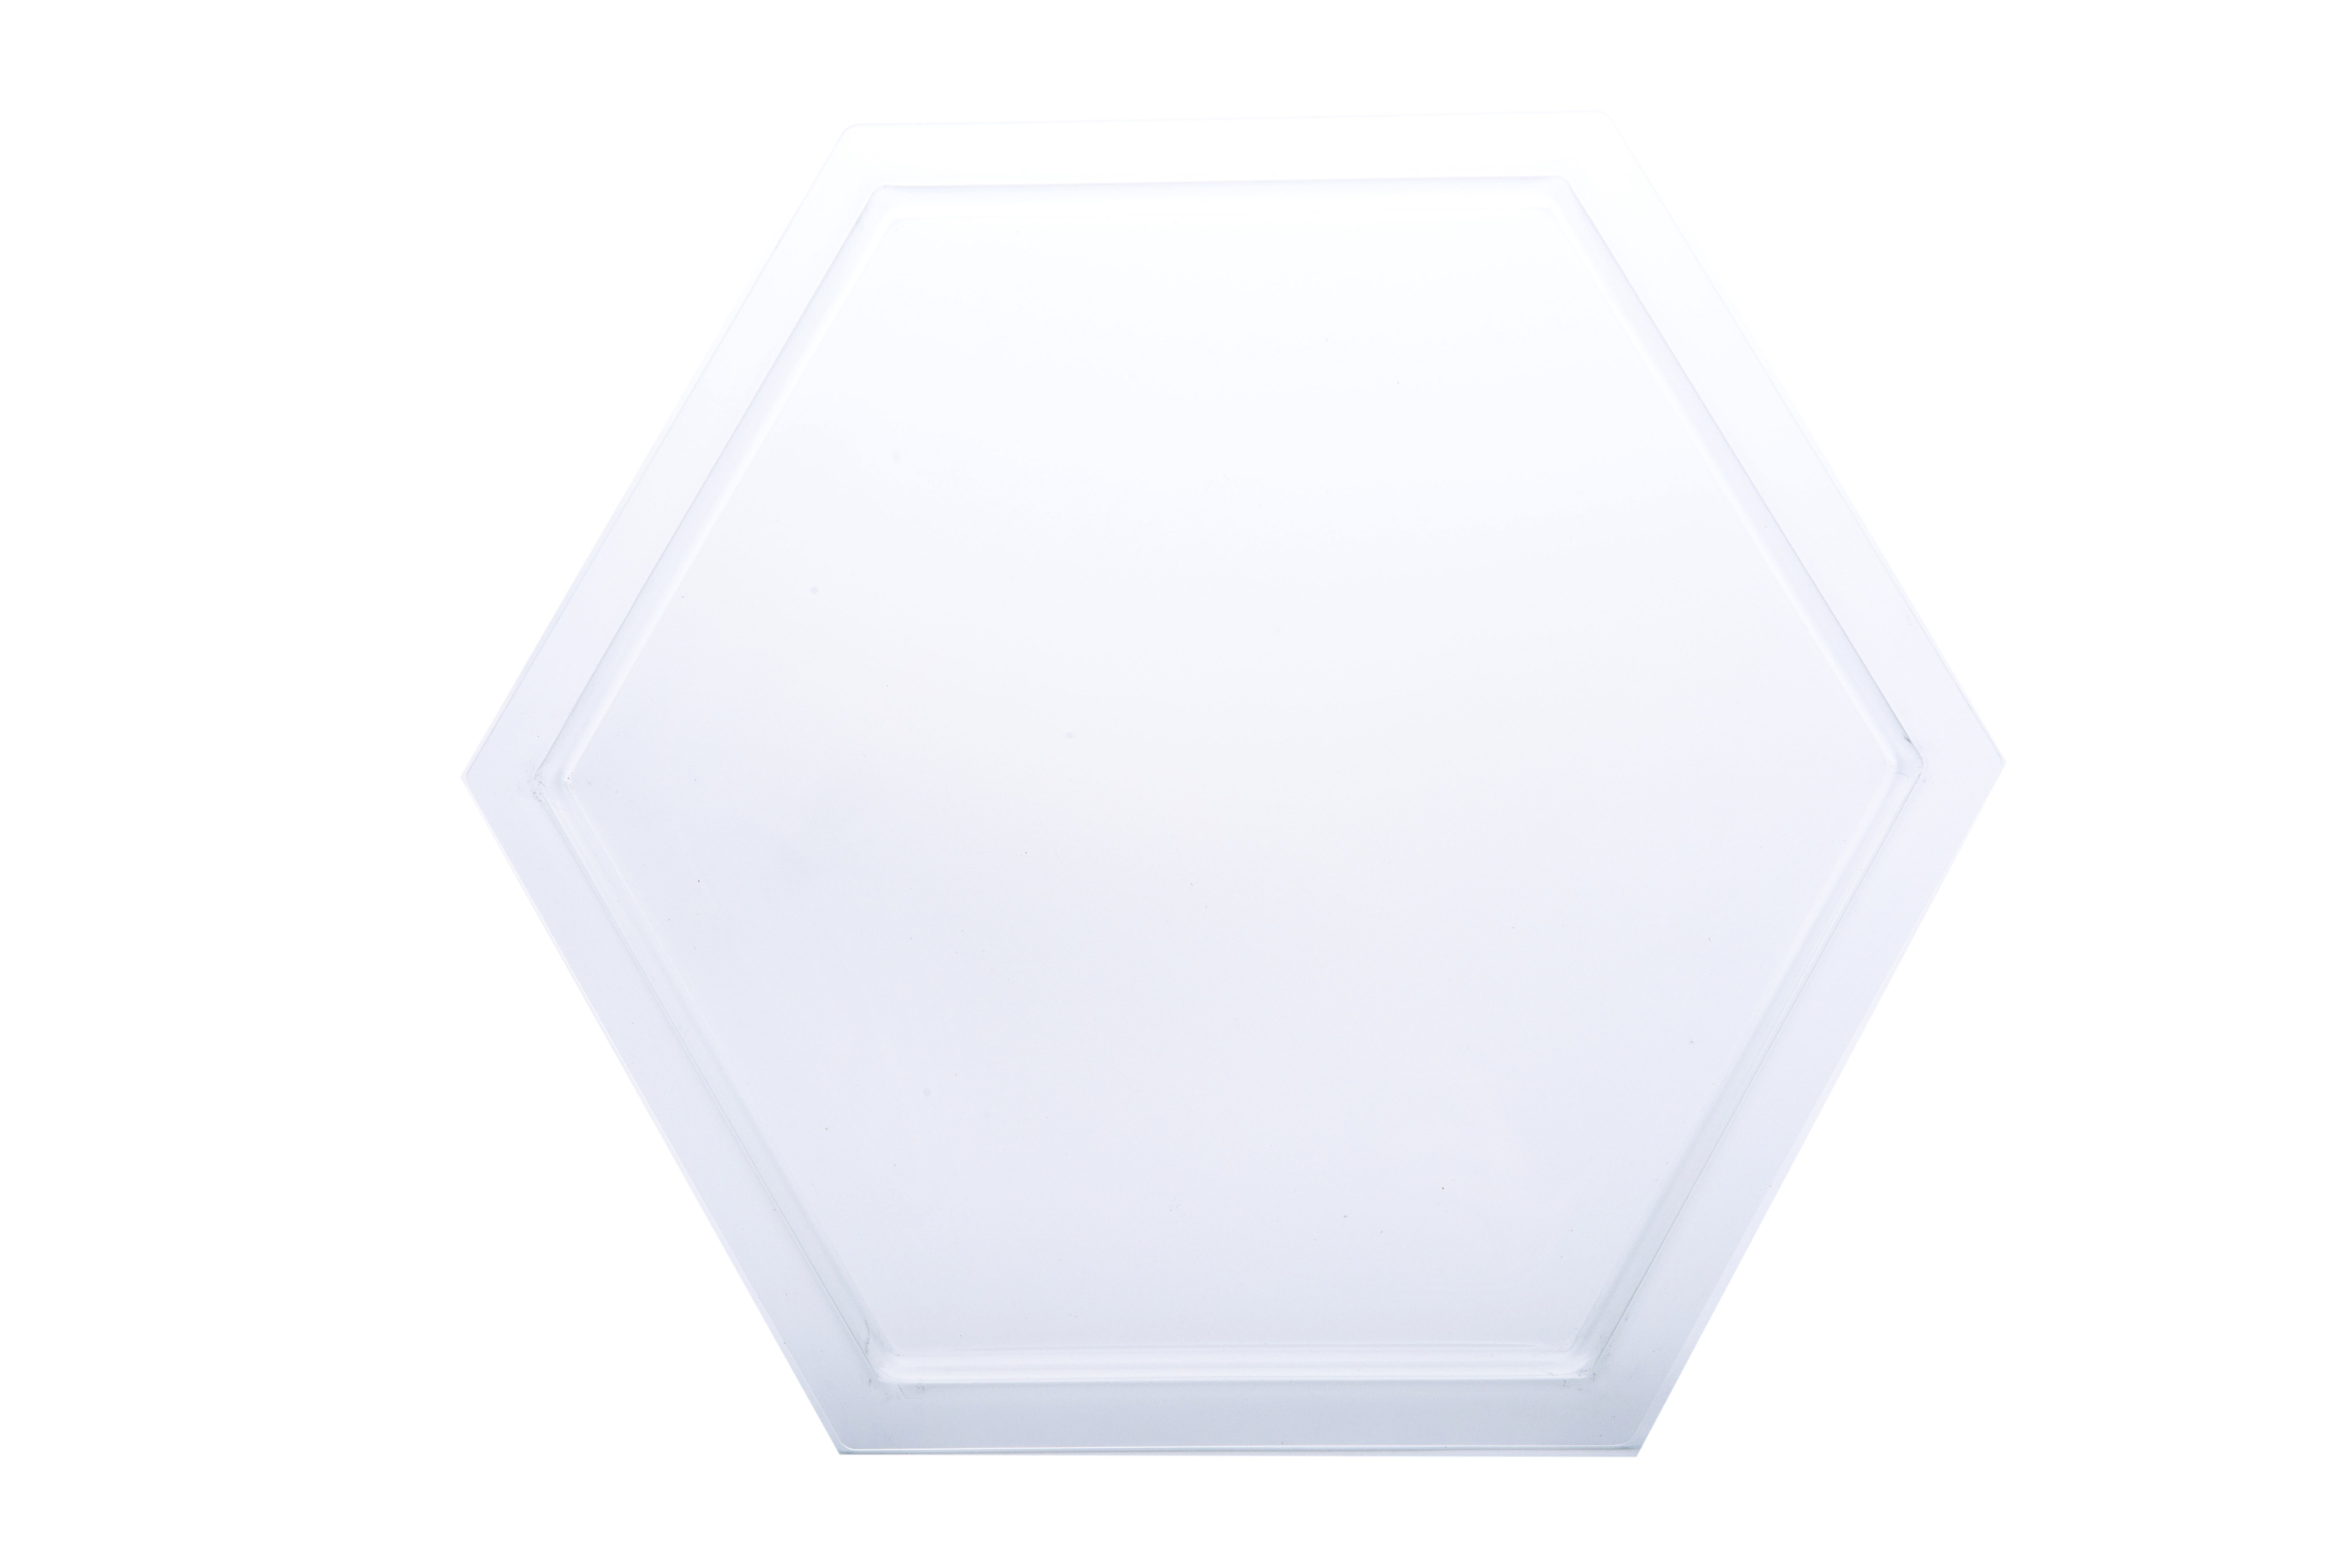 Frosted Acrylic Tray for Small Honeycomb Riser